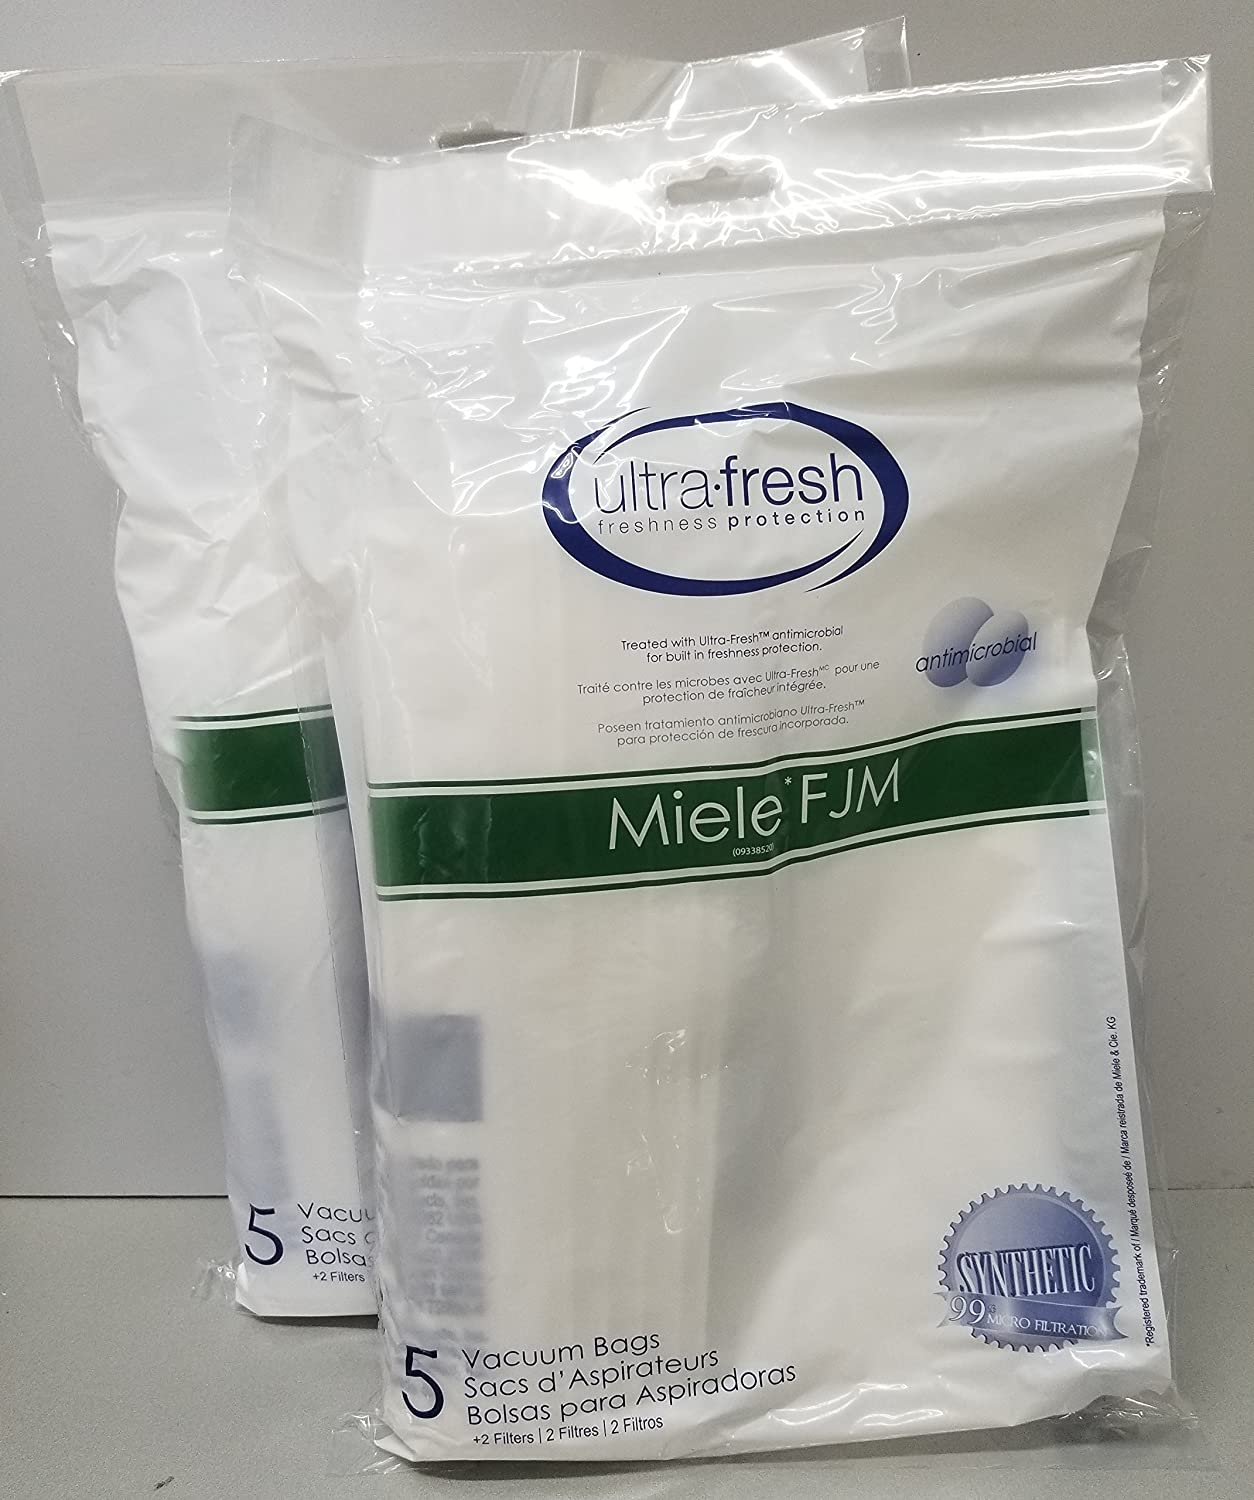 Amazon.com - Ultra Fresh Miele Type FJM Allergen Filtration Dust Bag (10 Pack + 4 Filters) S241 - S256i ✦ S290 and S291 ✦ S300i - S399 ✦ S500 - S578 ...